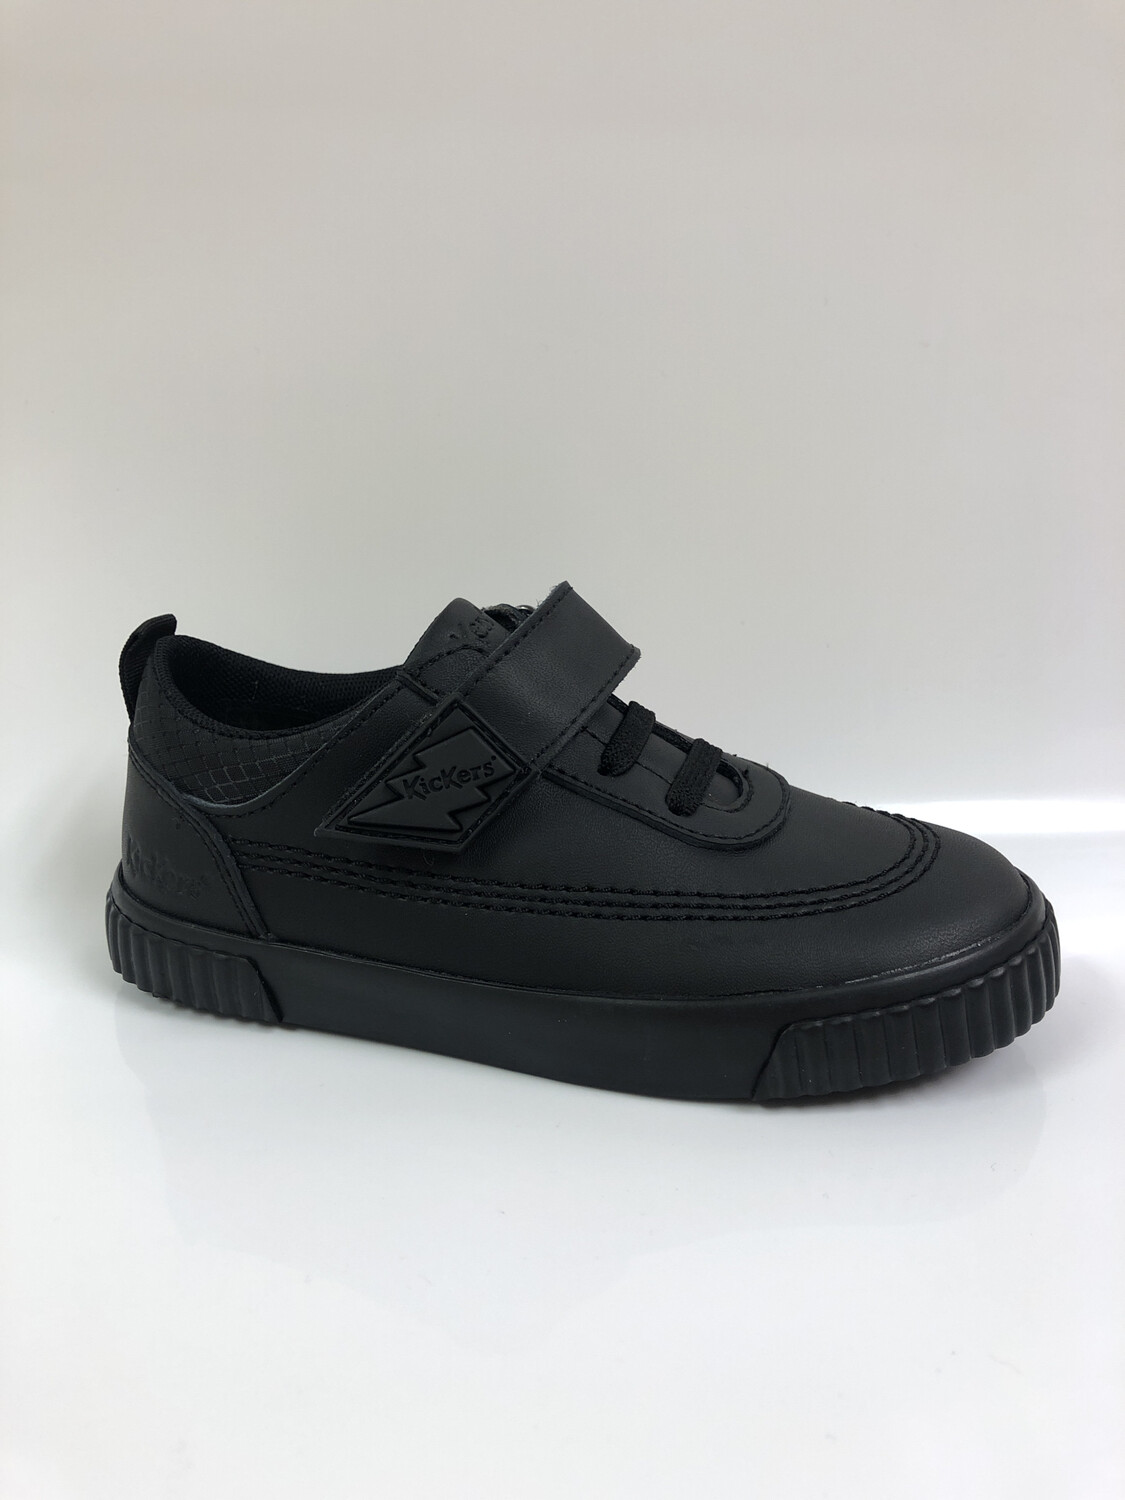 Kickers 'Tovni Bolt' in Black Leather (Size 9 to Size 12 only)